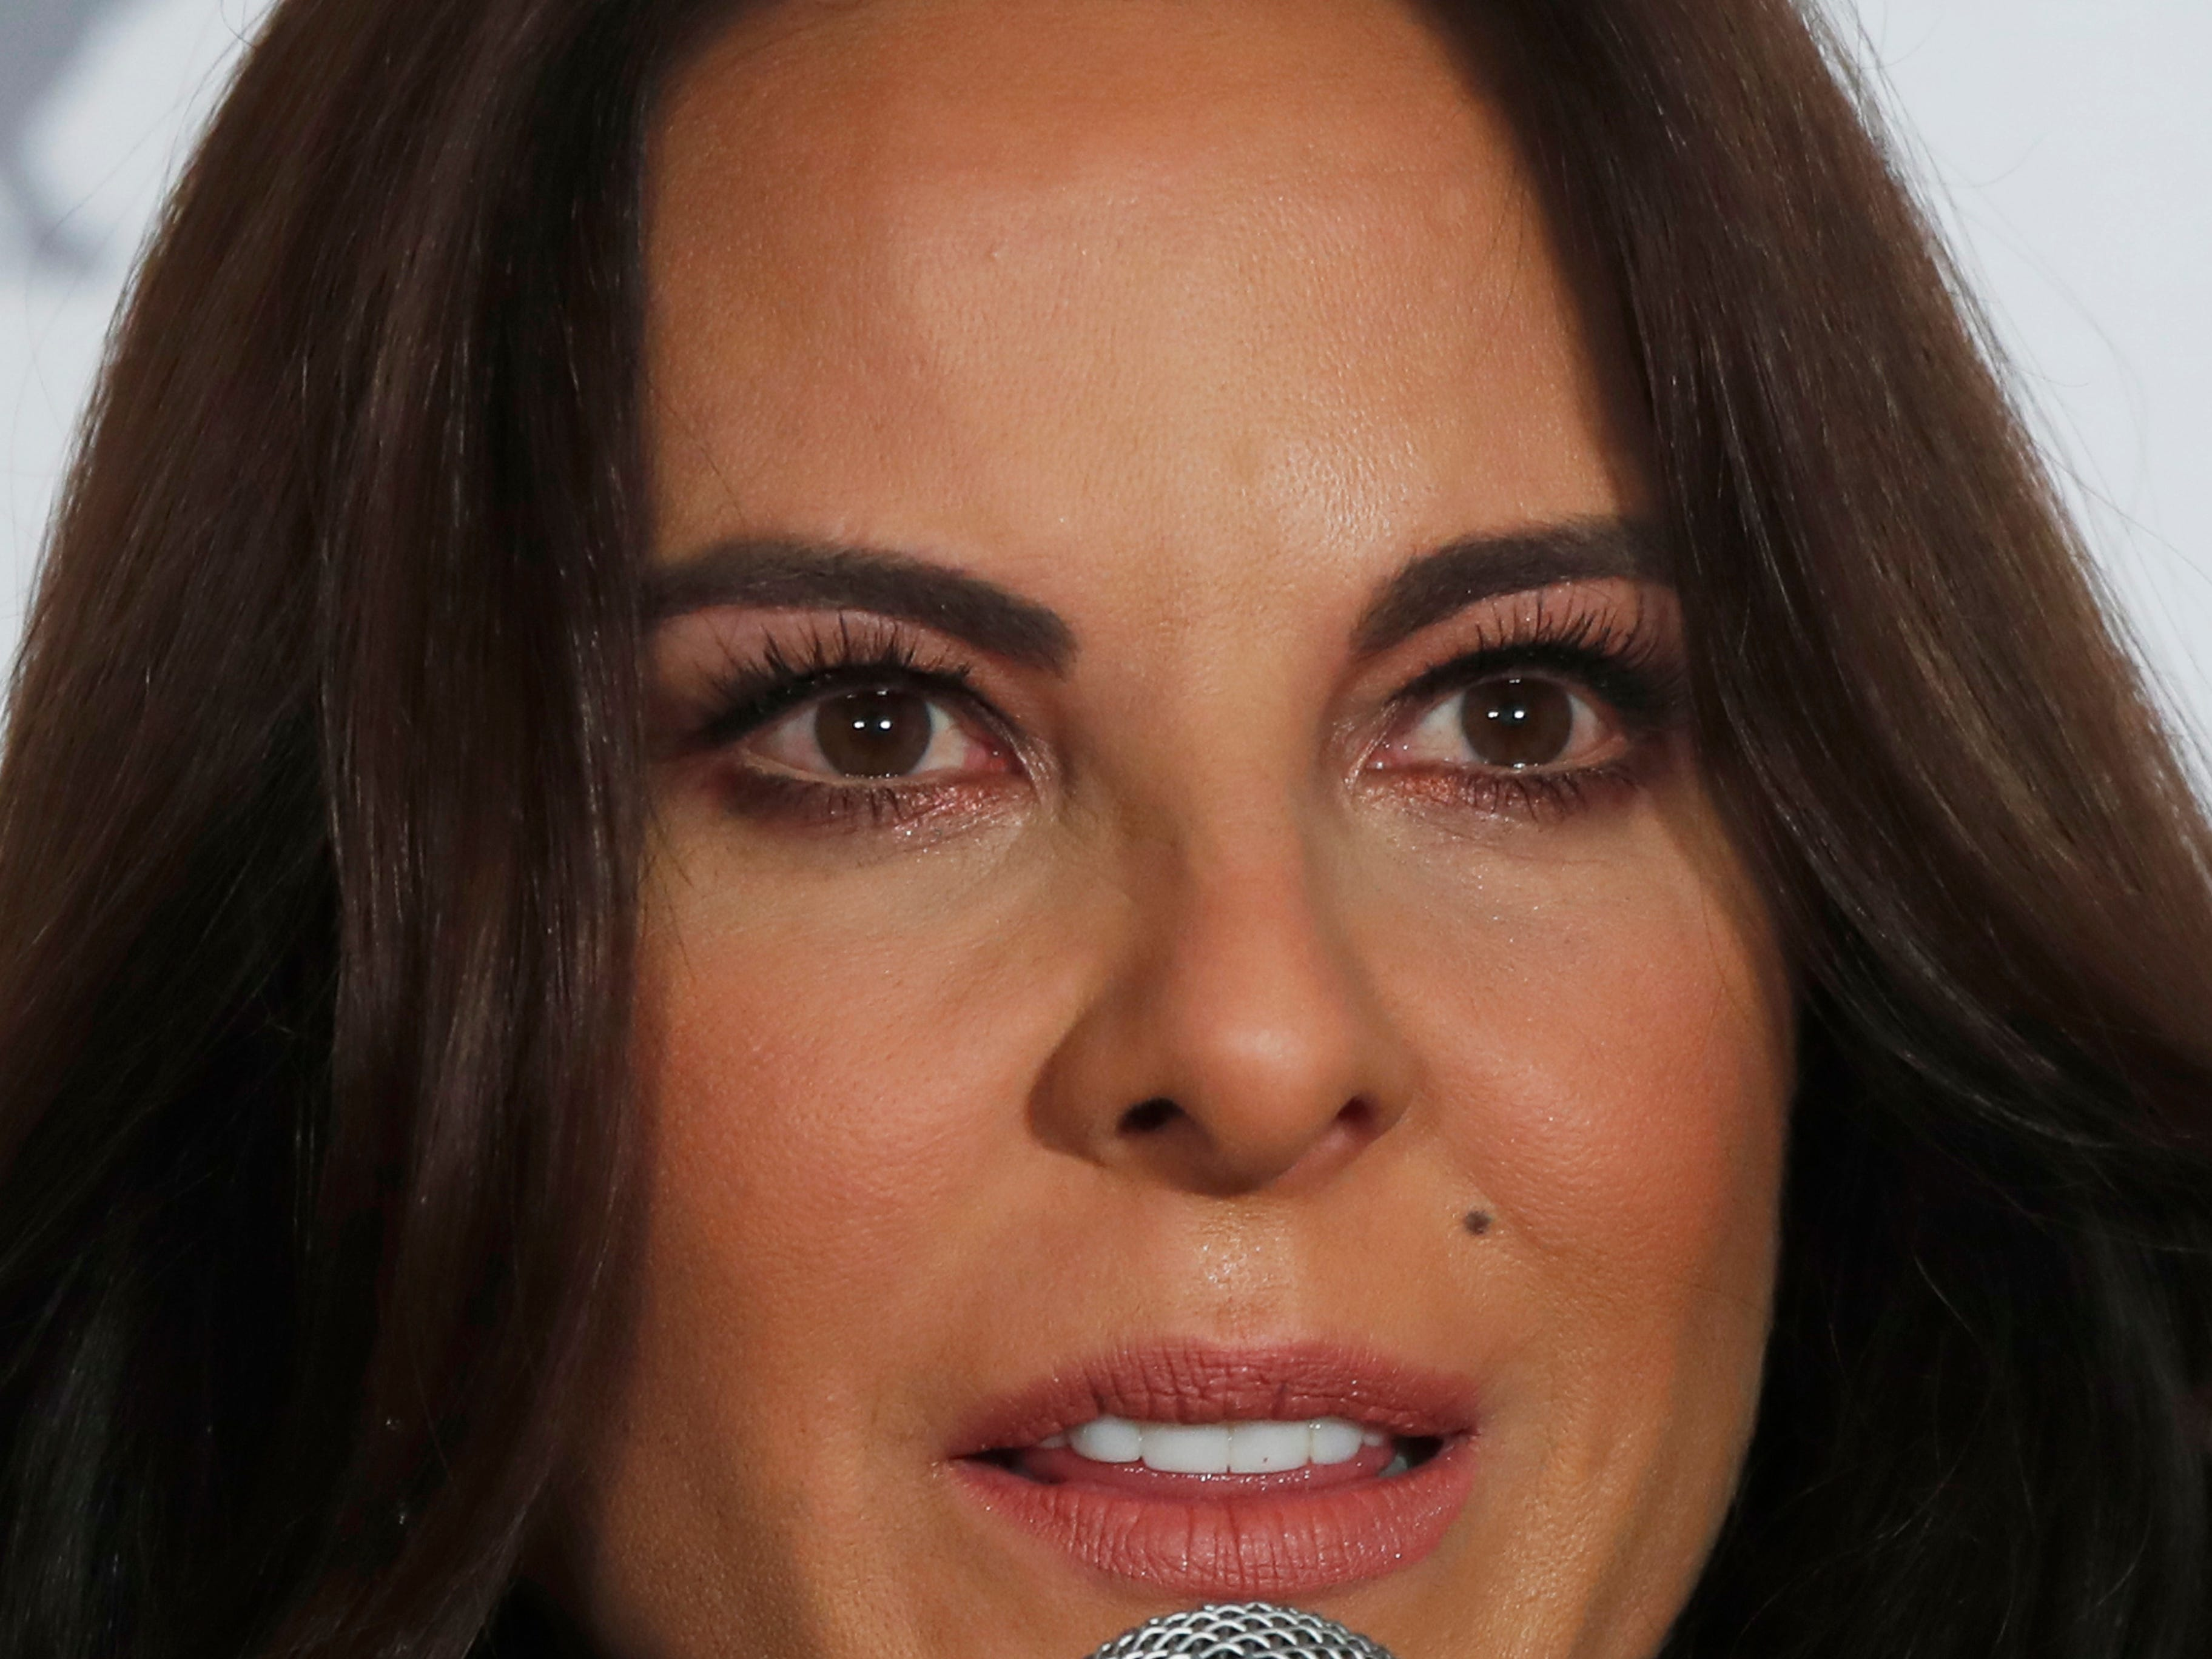 """Mexican actress Kate del Castillo gives a press conference in Mexico City, Thursday, Dec. 20, 2018. Del Castillo spoke about events surrounding her 2015 meeting with Joaquin """"El Chapo"""" Guzman, a Mexican drug lord who at the time was hiding from authorities. When del Castillo met with Guzman, she said it was with the intent to make a film about his life."""